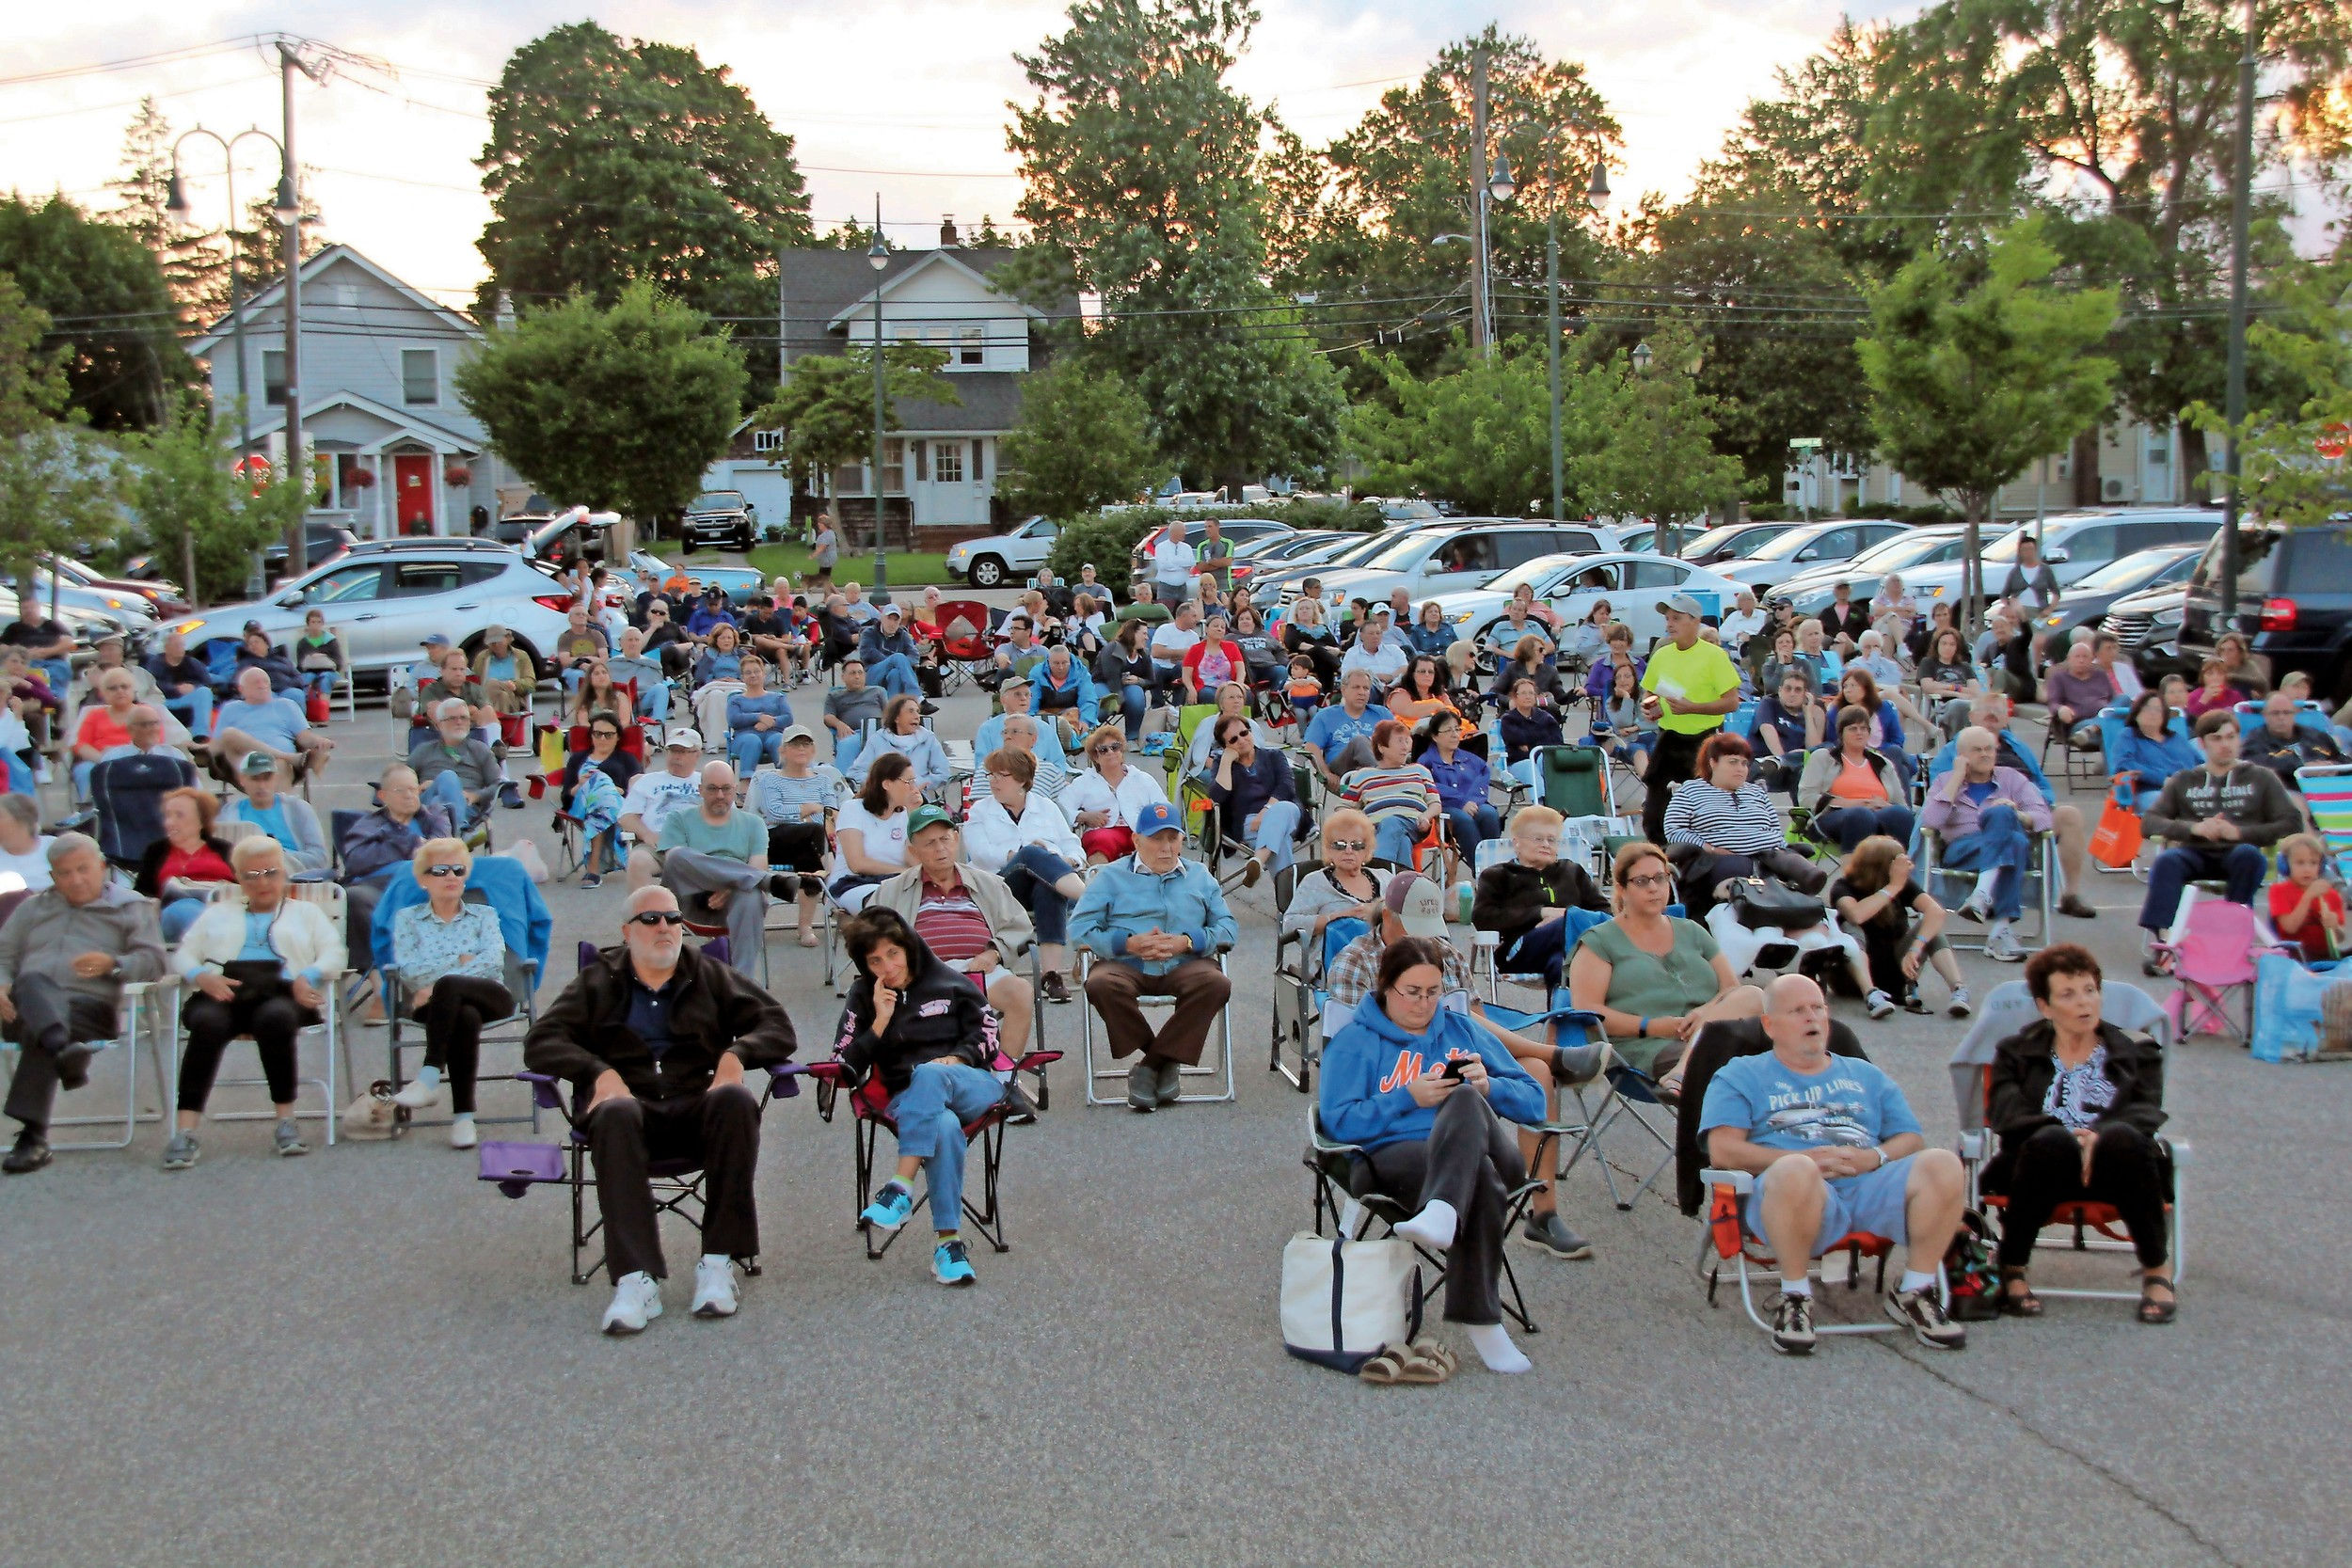 Hundreds of residents attended the concert, which was held in the parking lot next to the library.